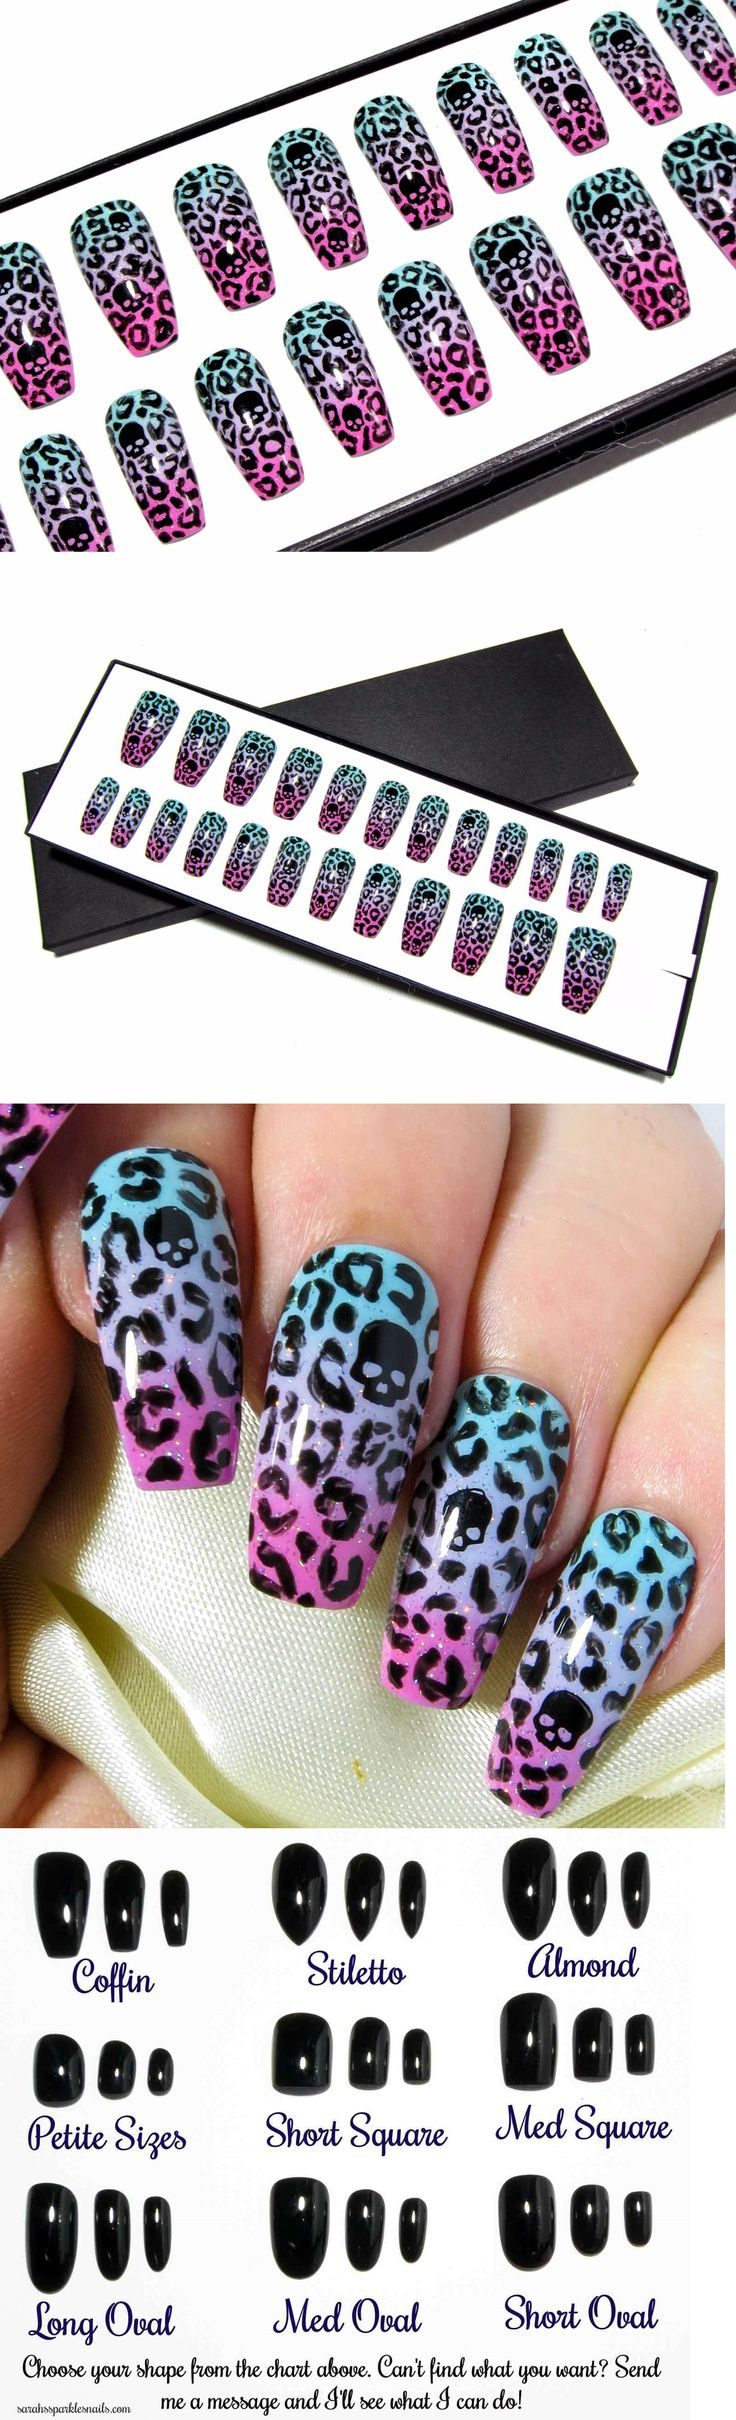 Press-On Nails: Hand Painted Pastel Nail Art Press Glue On Coffin Full False Fake Acrylic Nails BUY IT NOW ONLY: $39.99